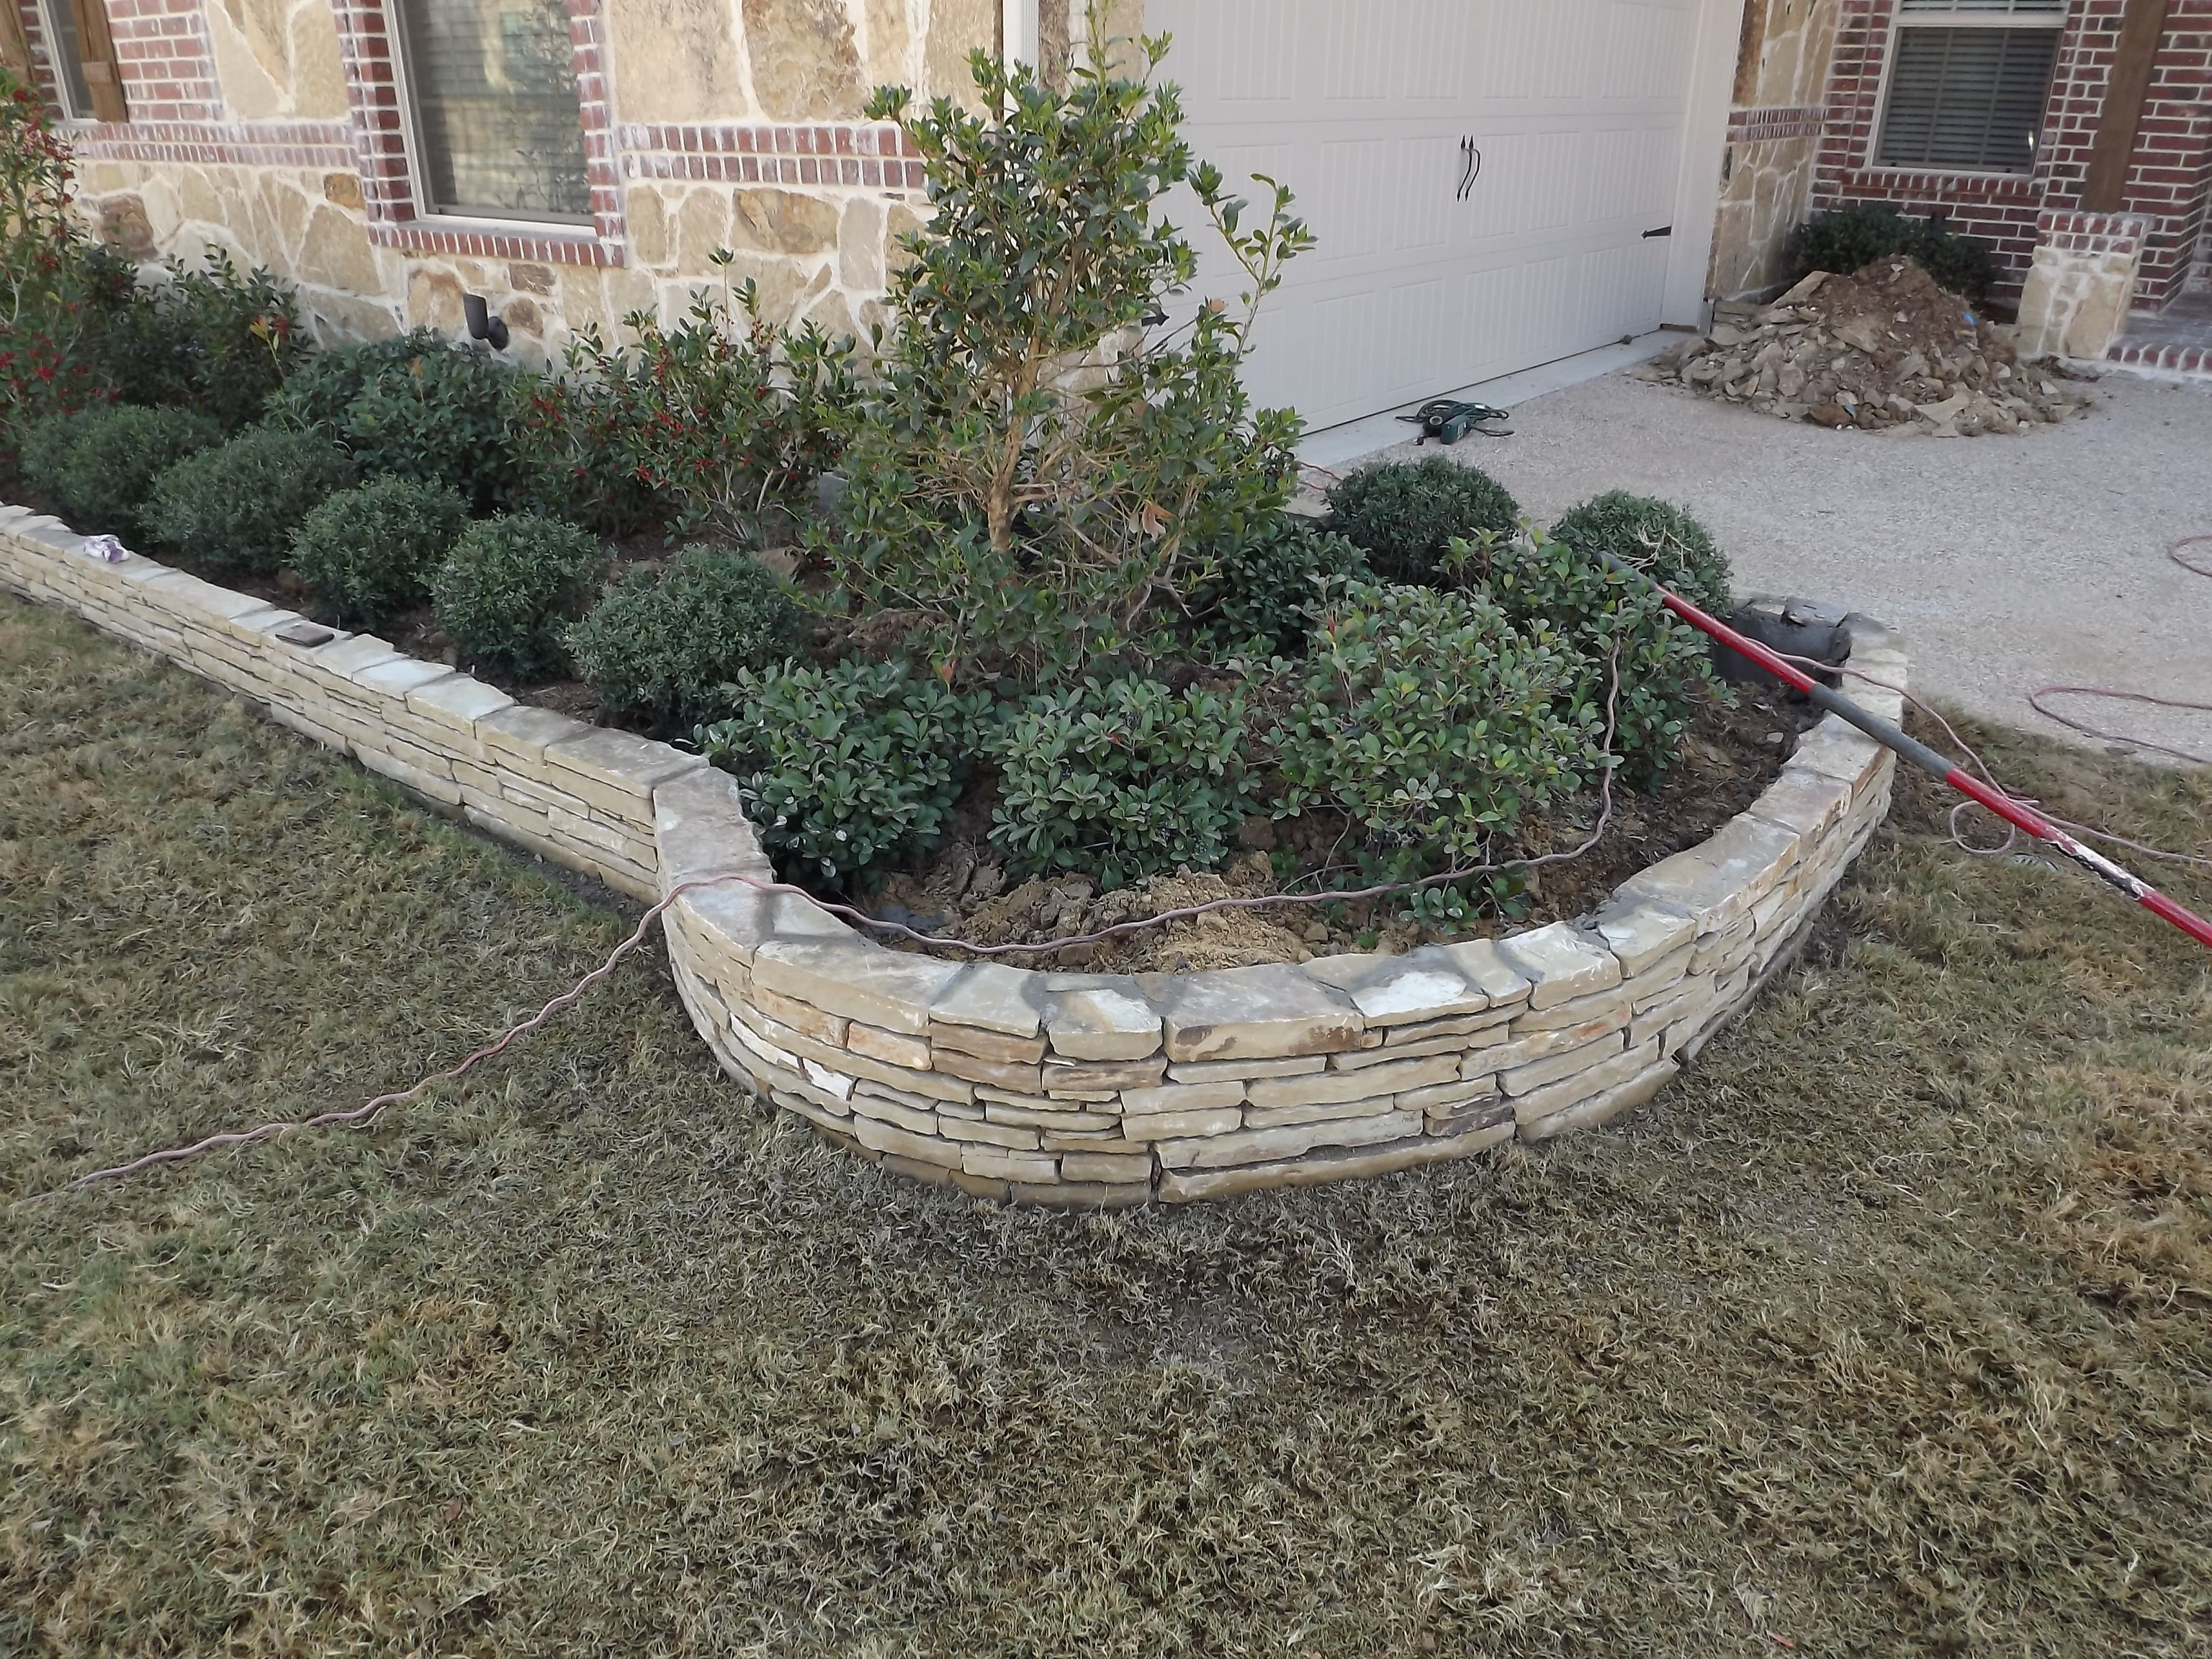 Stacked stone flowerbed edging trophy club tx 2012 2 for Rock garden edging